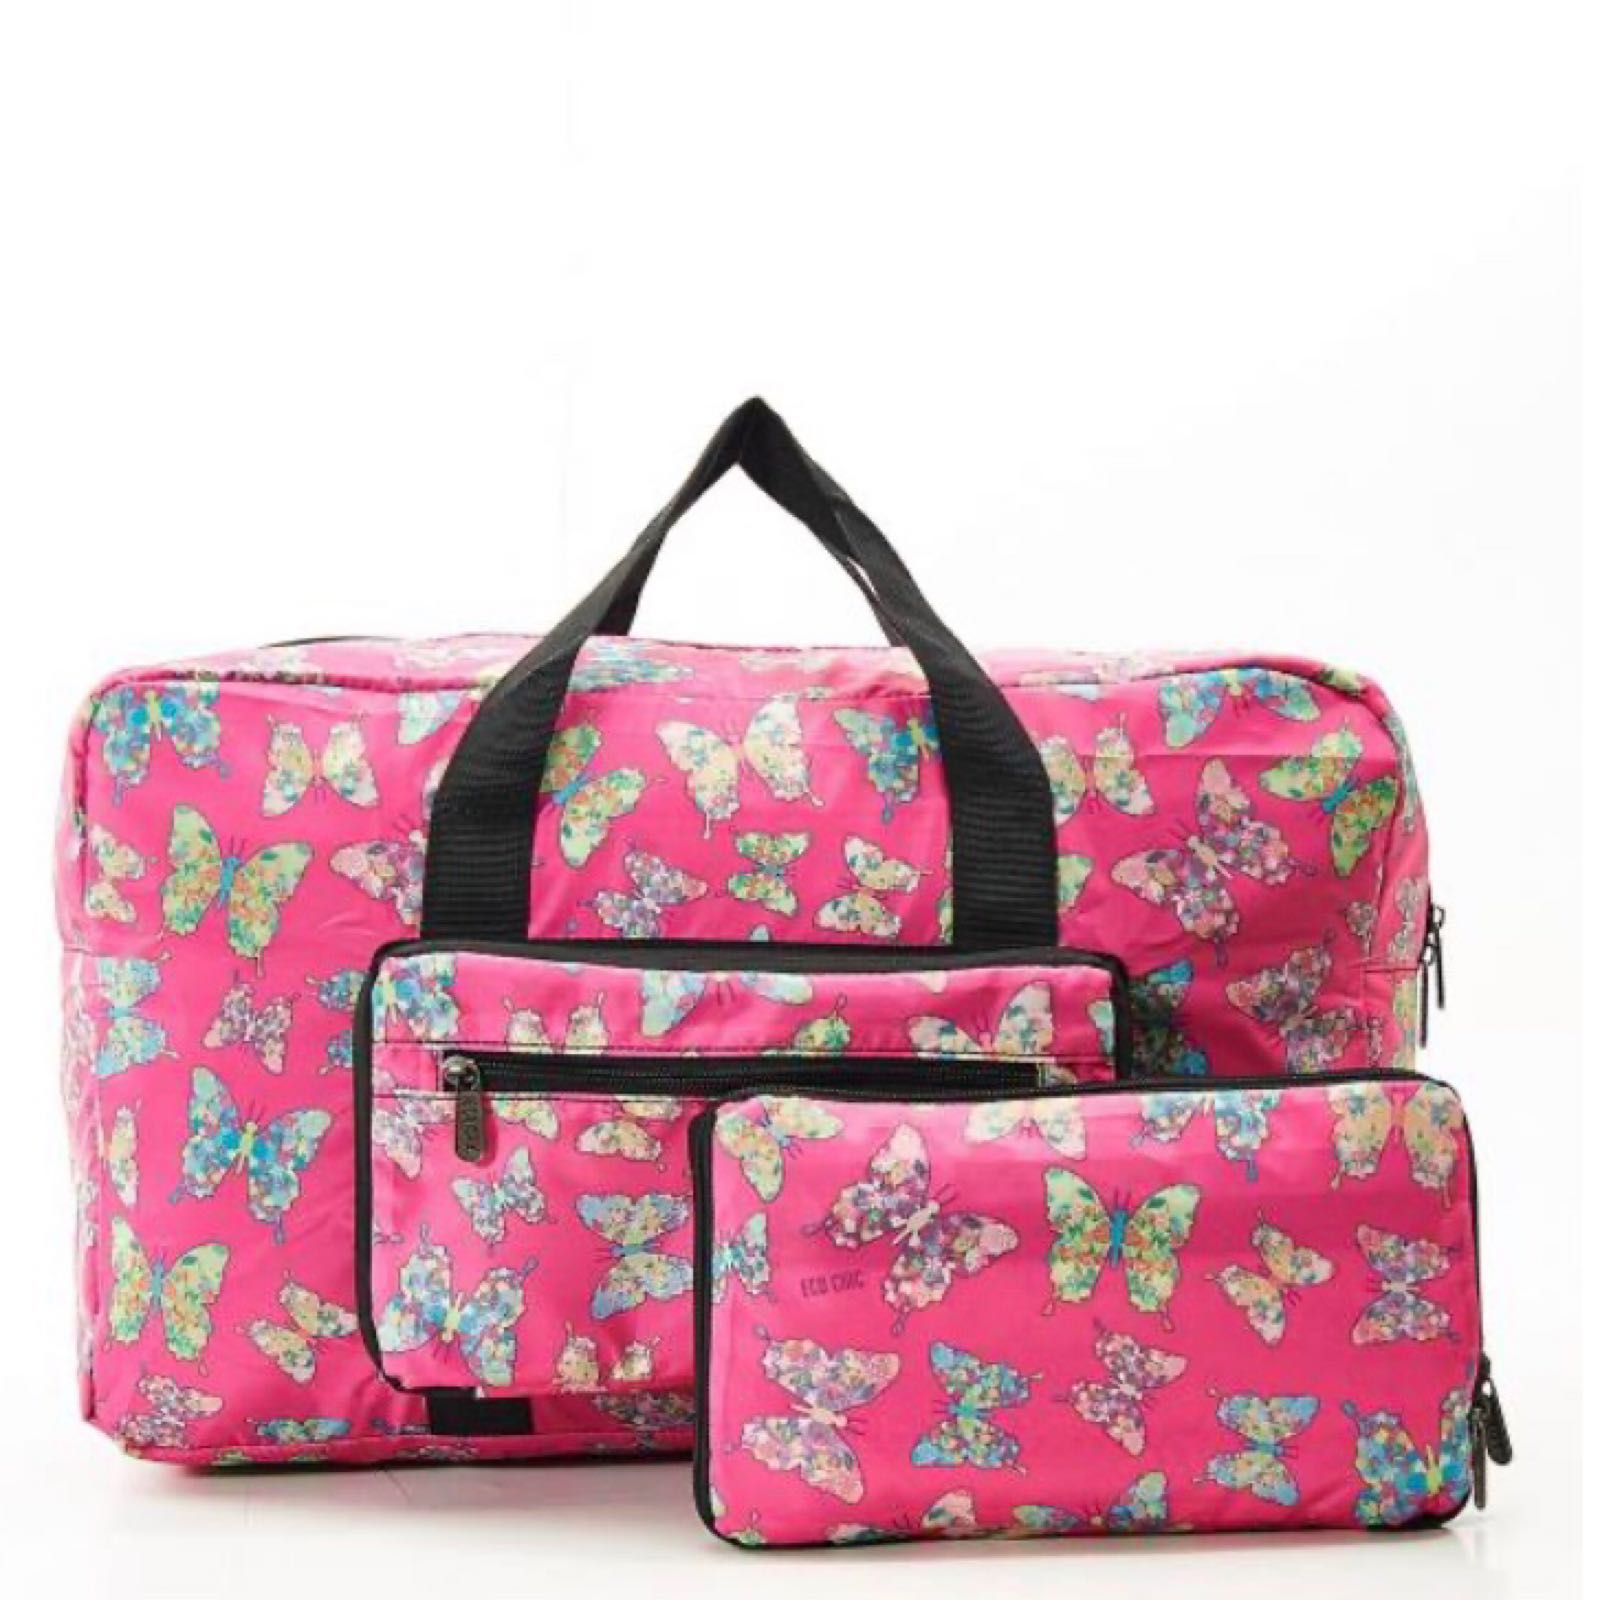 'Butterflies' Foldable Holdall